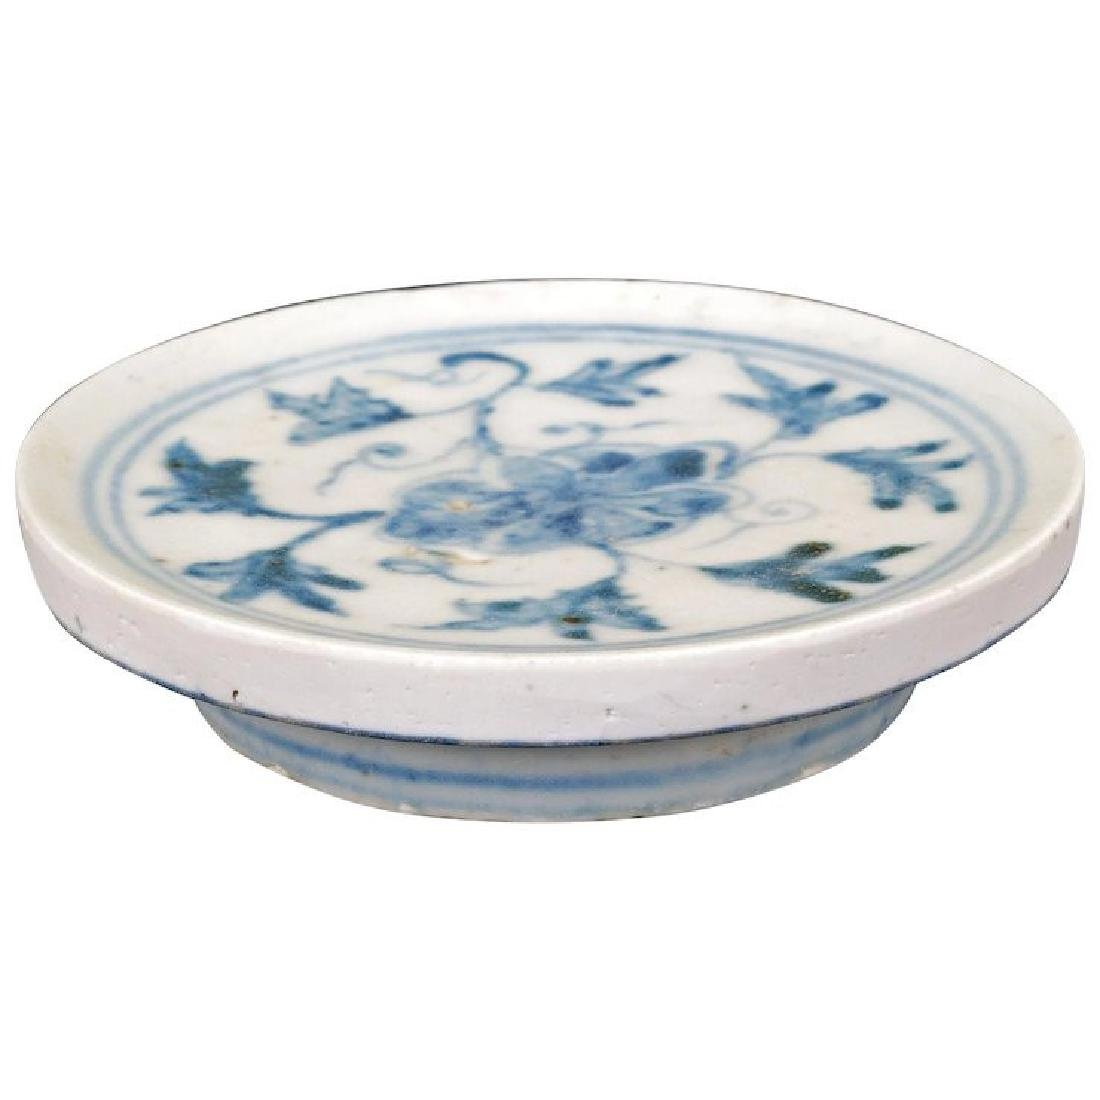 Chinese Ming blue and white porcelain footed stand or